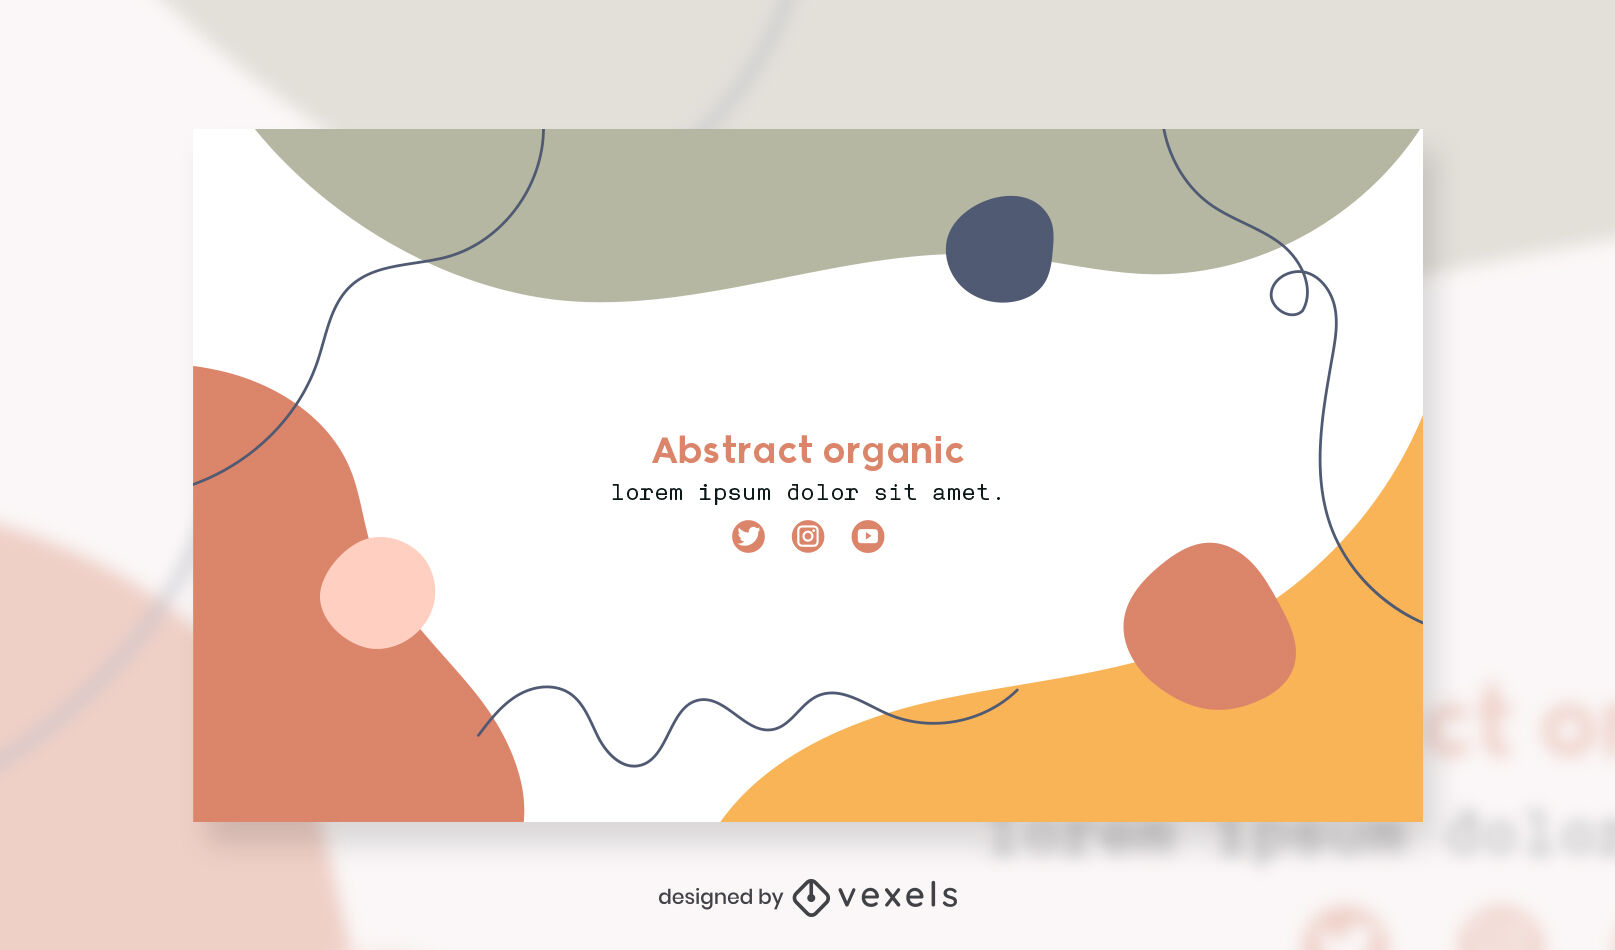 Organic abstract shapes facebook cover template